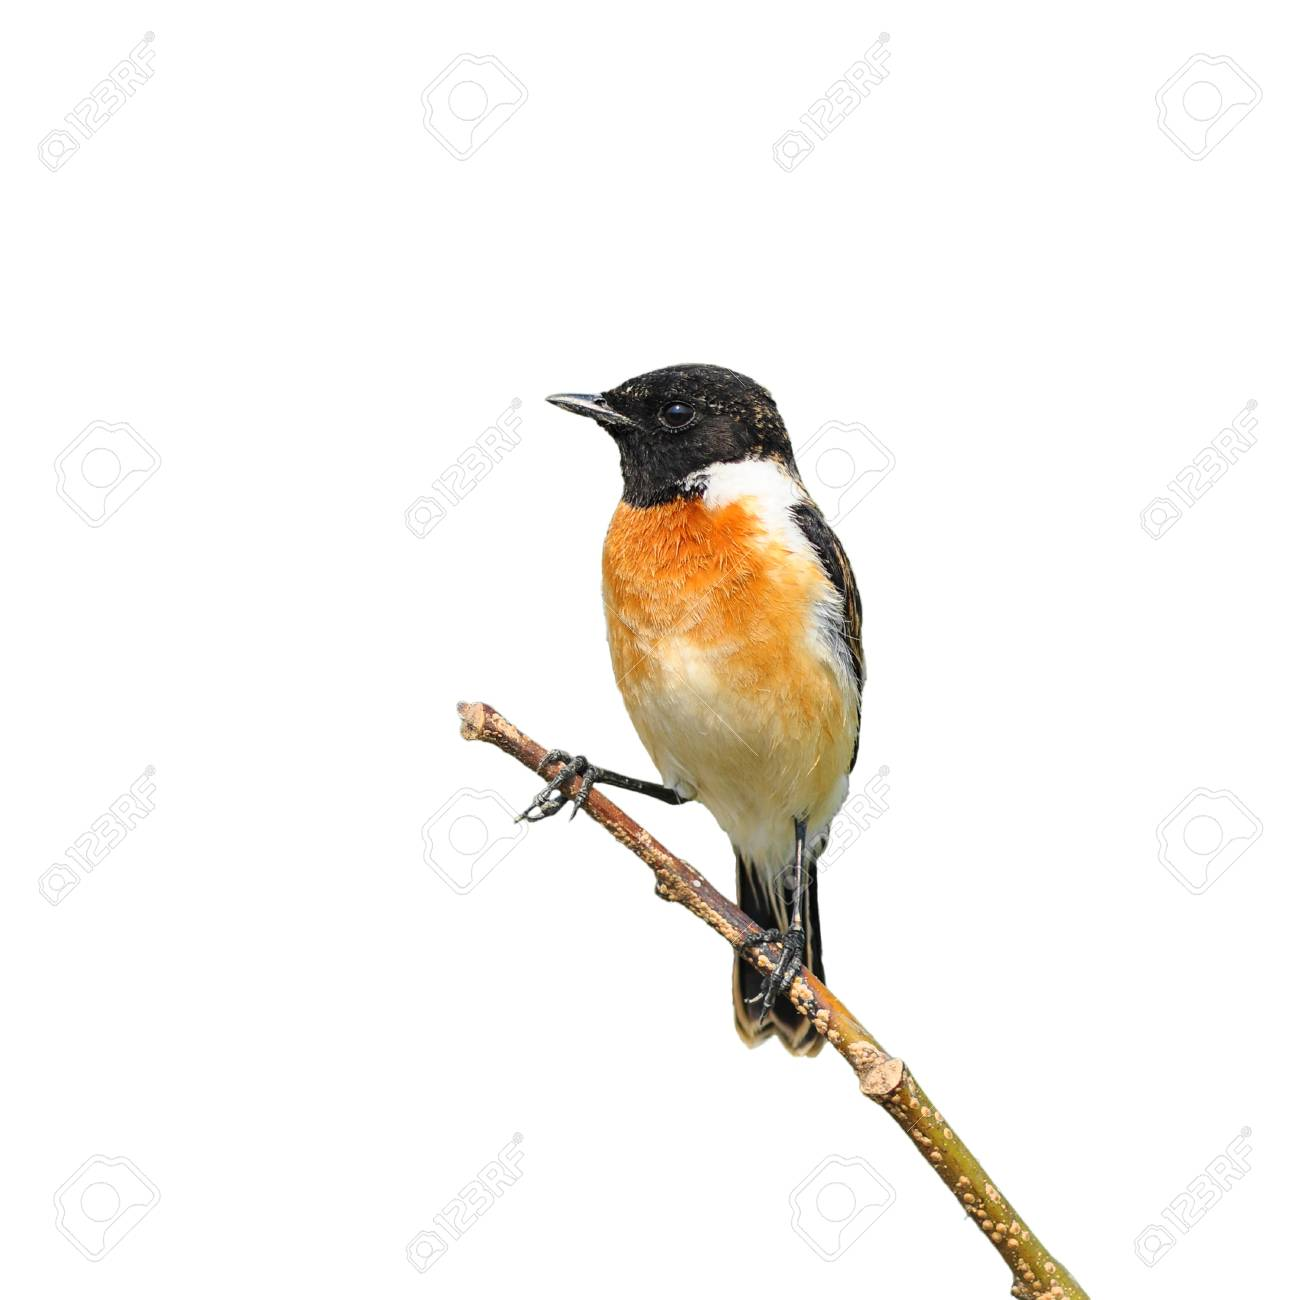 Stone Chat Bird Sitting On A Branch On White Background Stock Photo Picture And Royalty Free Image Image 18240146